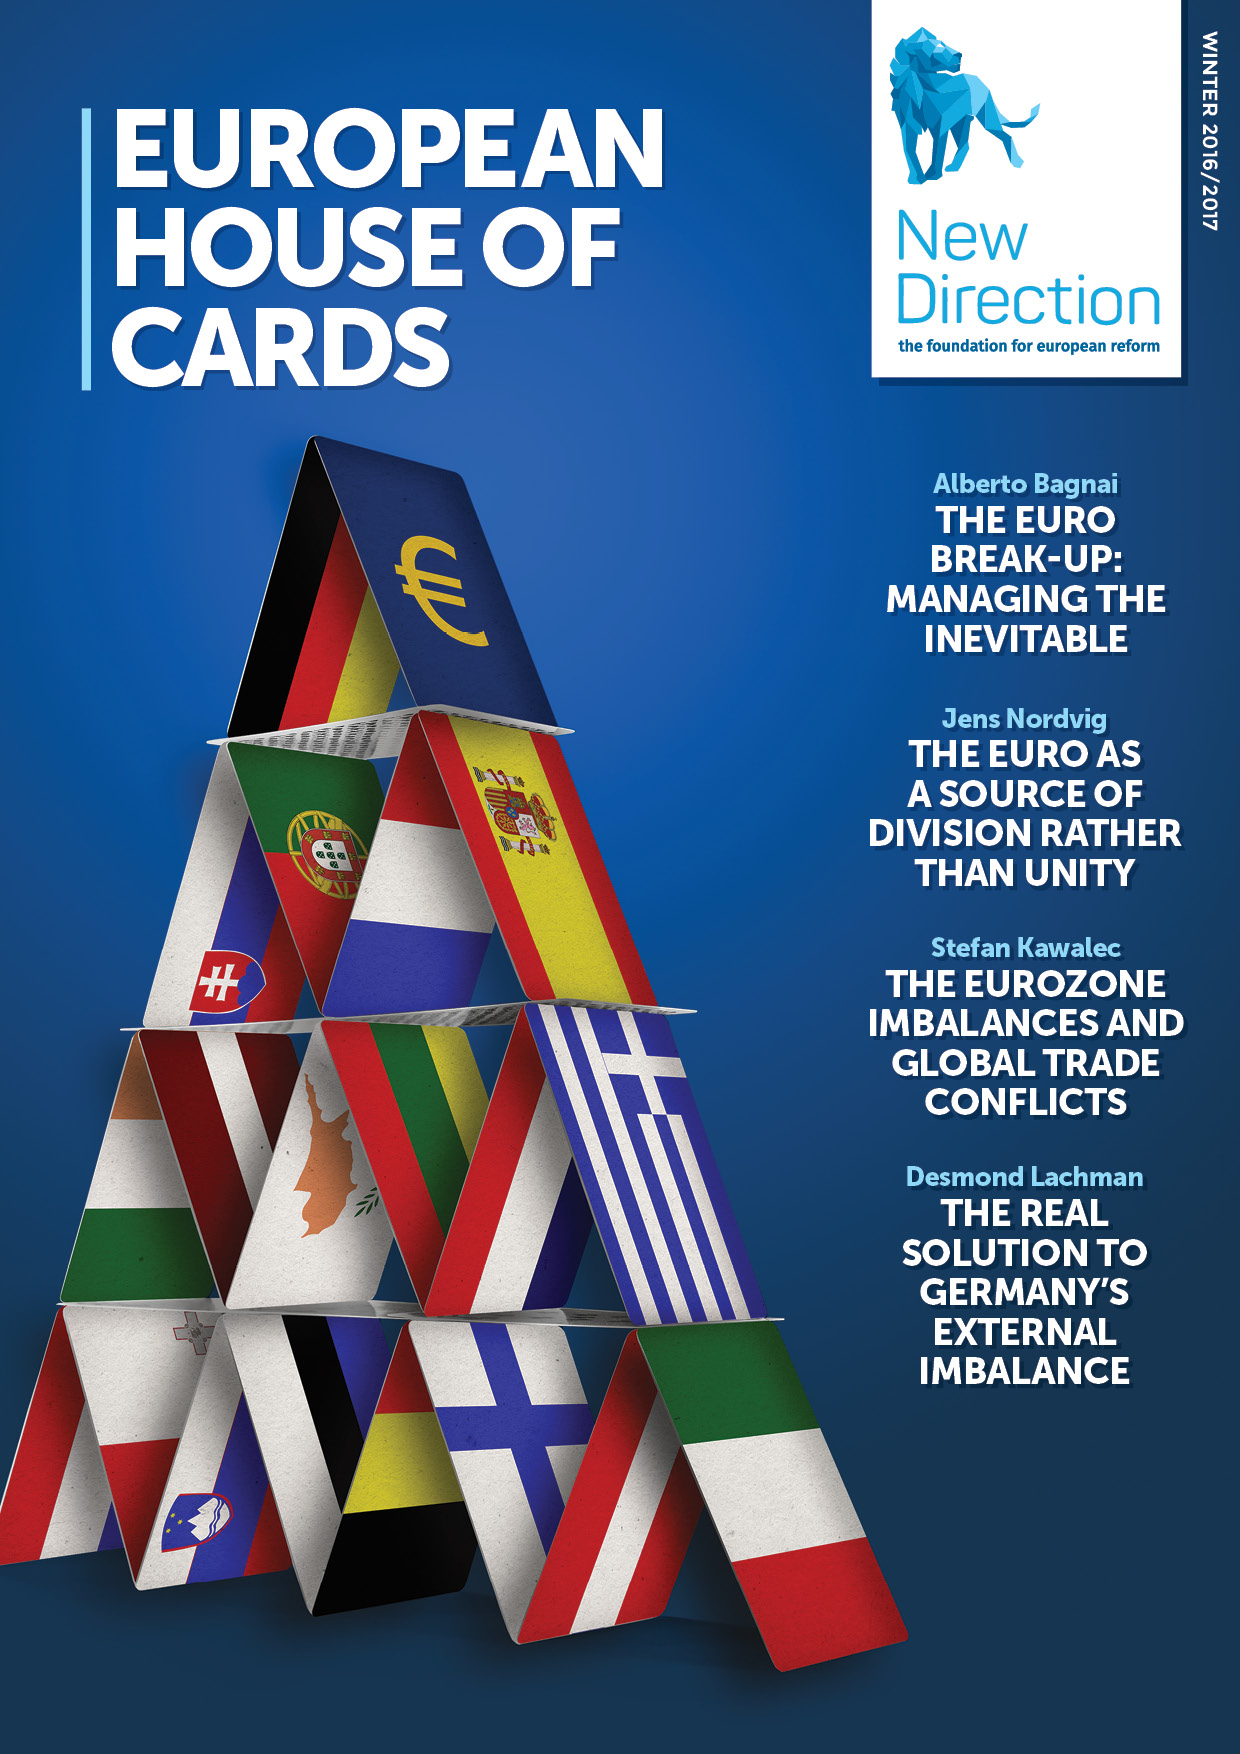 European House of Cards